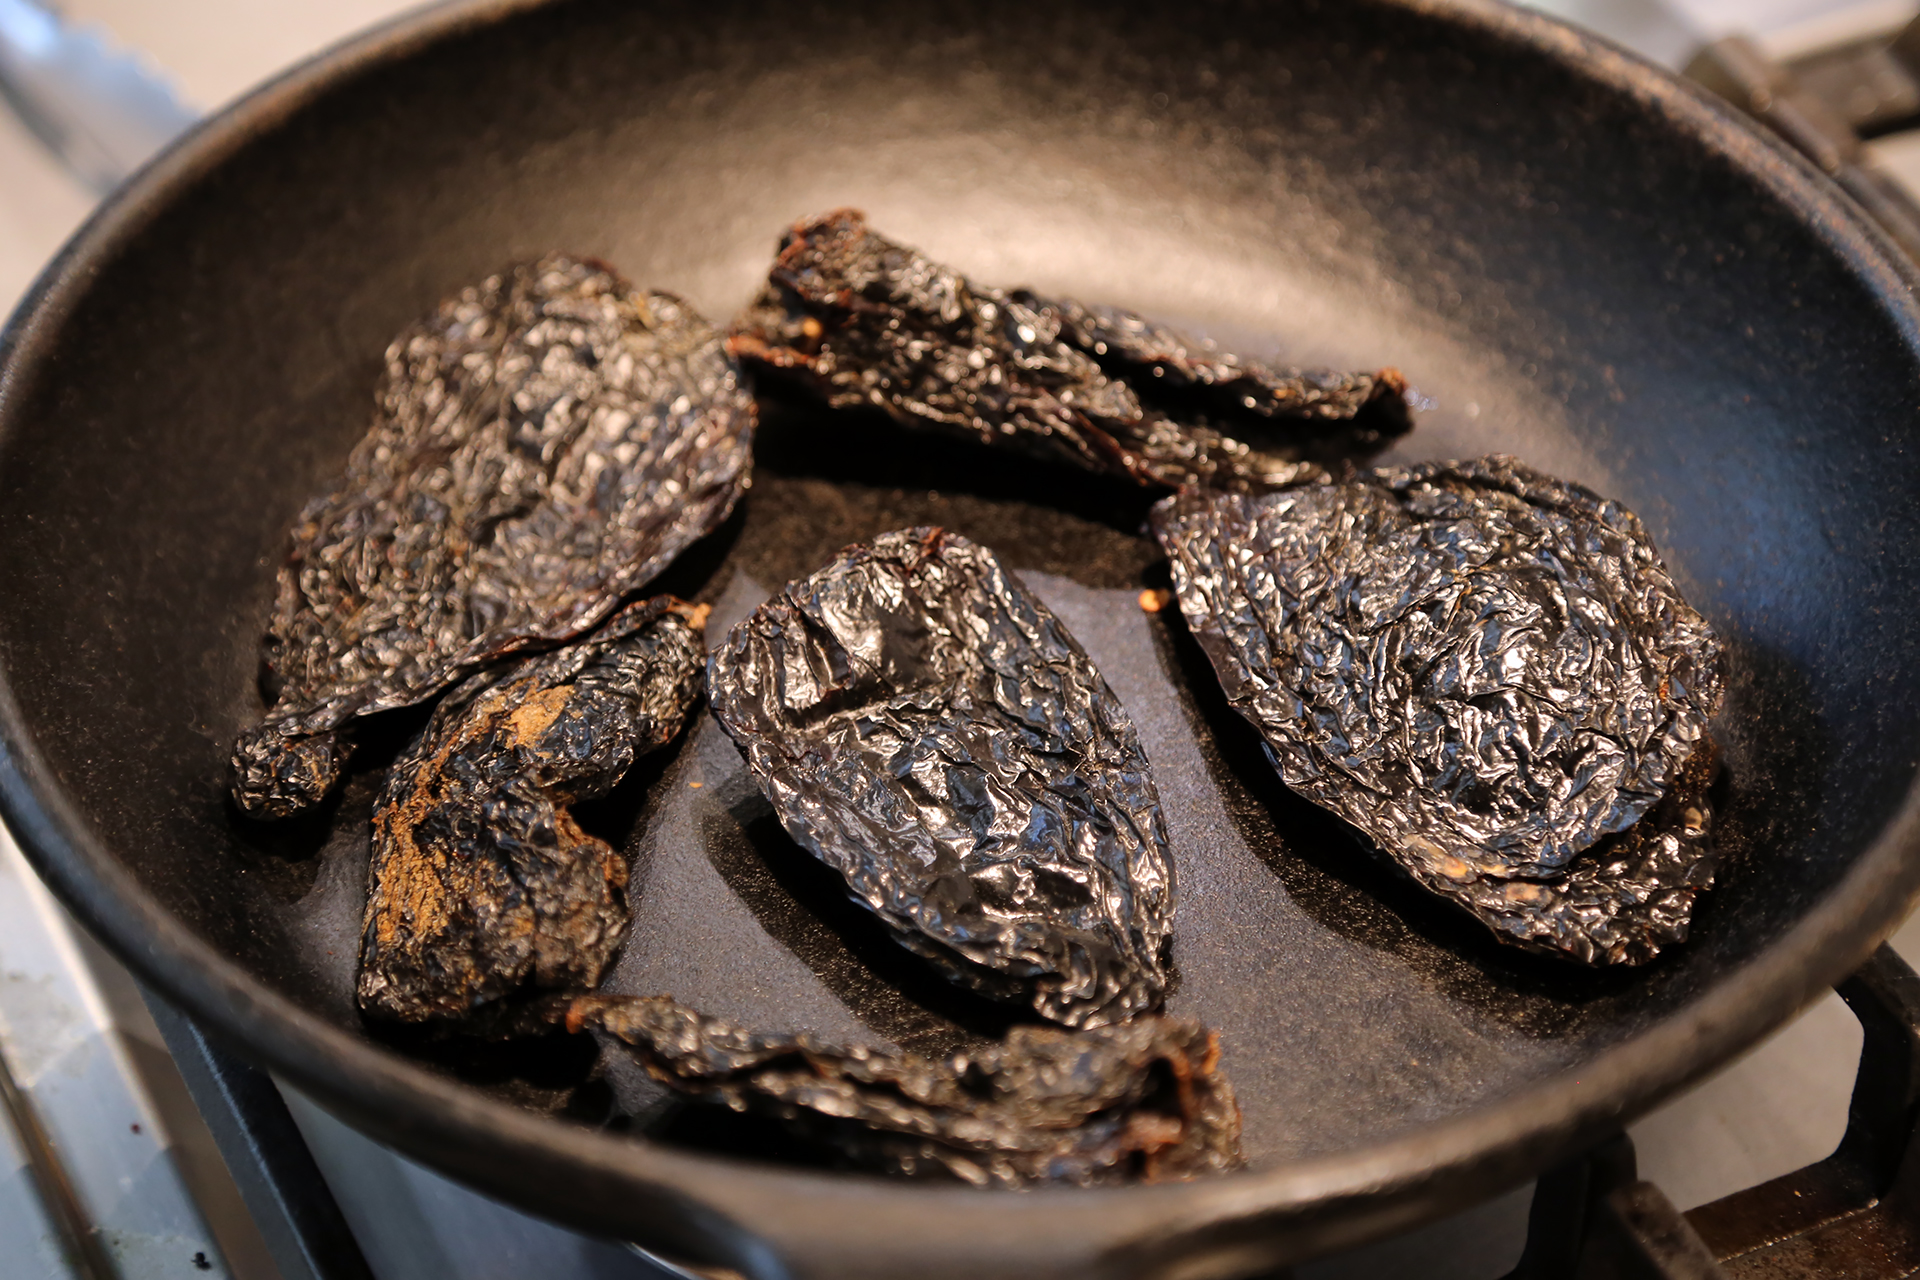 In a large skillet (with a lid) over medium heat, toast the chiles until fragrant and toasted, turning often, about 5 minutes.